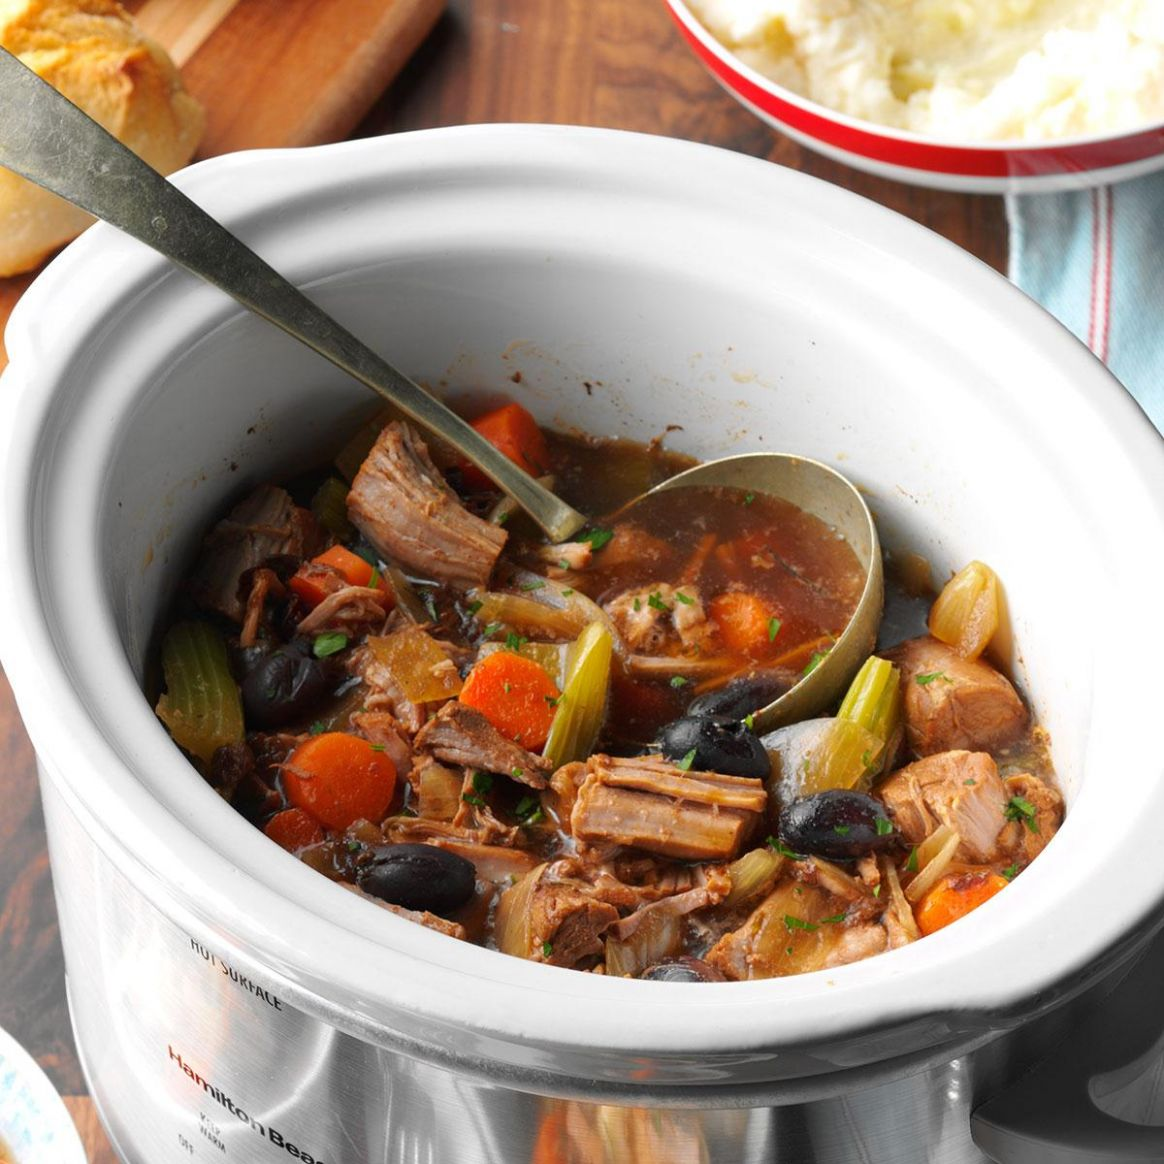 Slow-Cooked Pork Stew - Recipes Using Pork Stew Meat